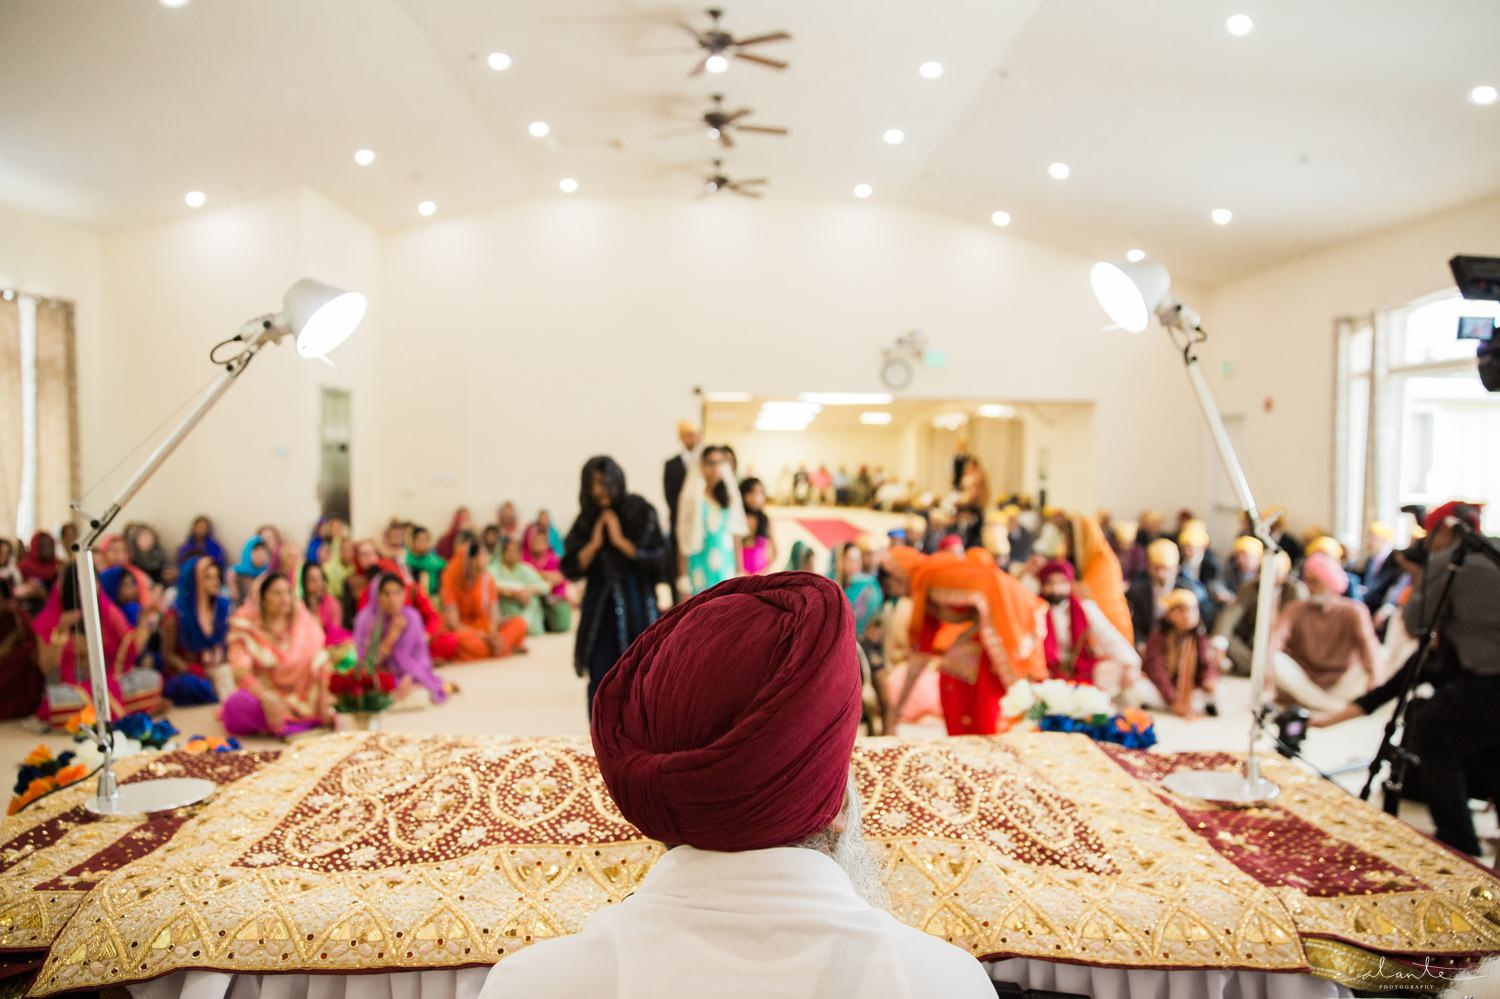 Sikh Indian Wedding Photography by Alante Photography http://www.alantephotography.com